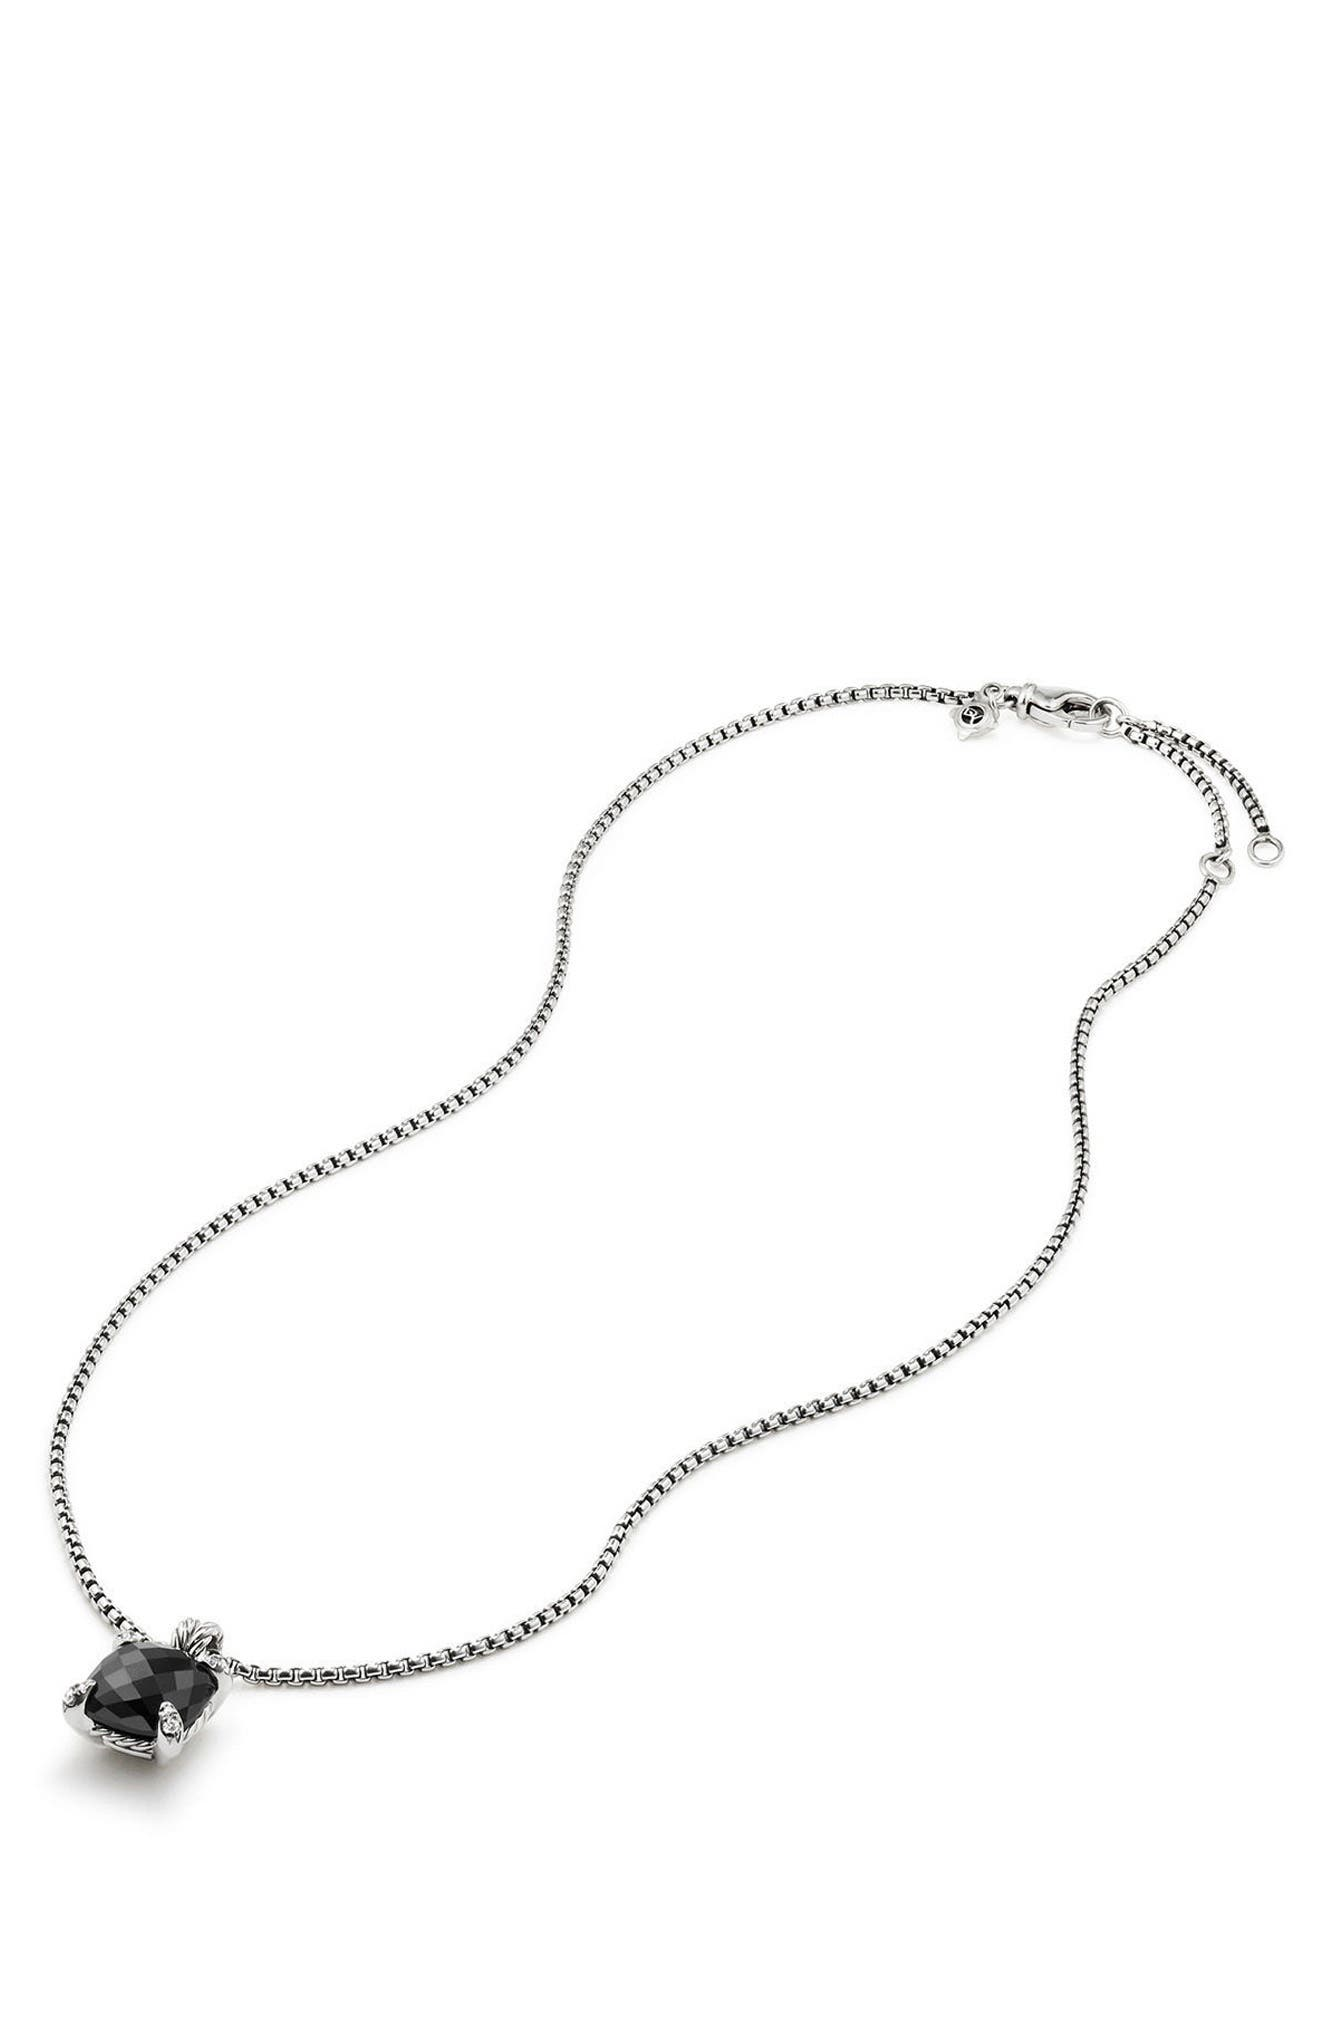 Alternate Image 1 Selected - David Yurman Châtelaine Pendant Necklace with Black Onyx and Diamonds